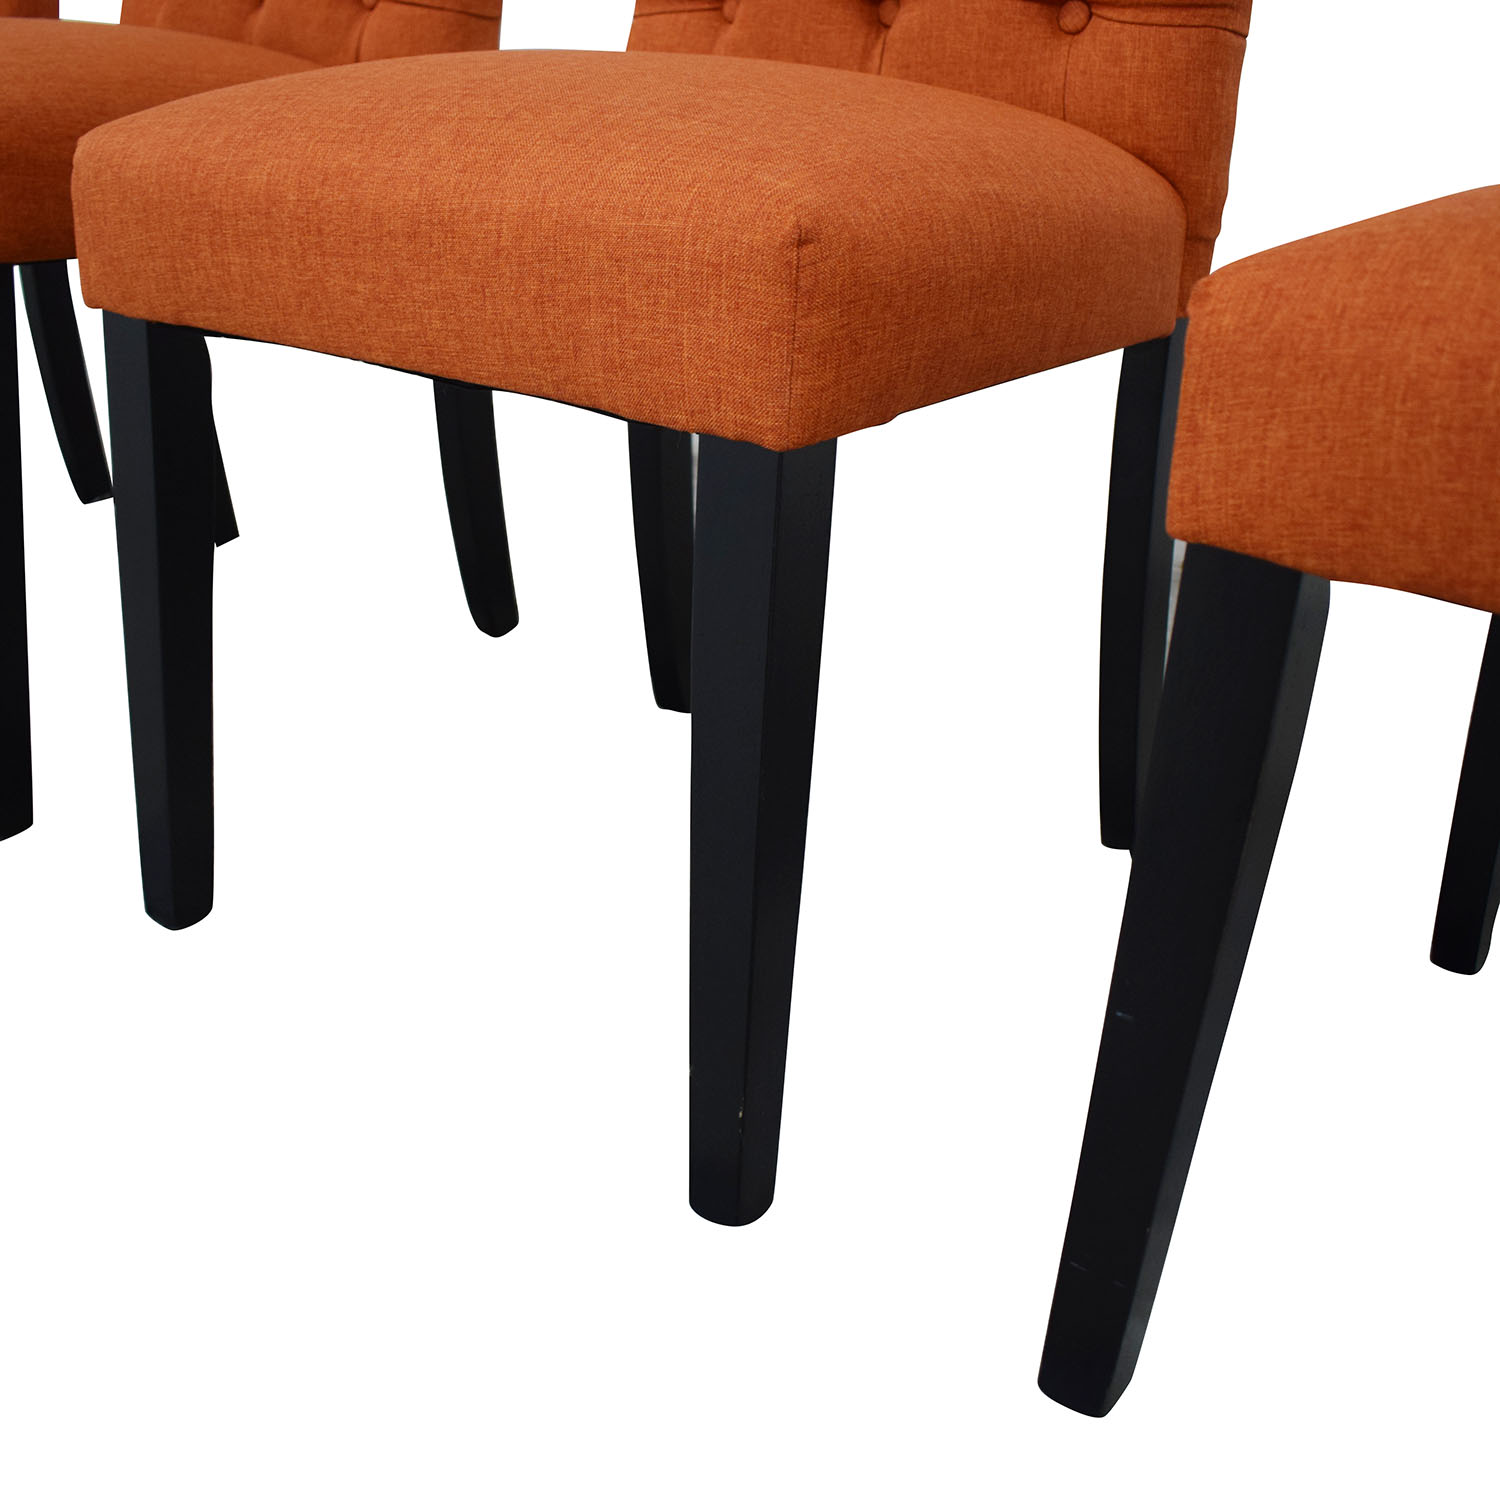 Modway Modway Confer Dining Chairs used